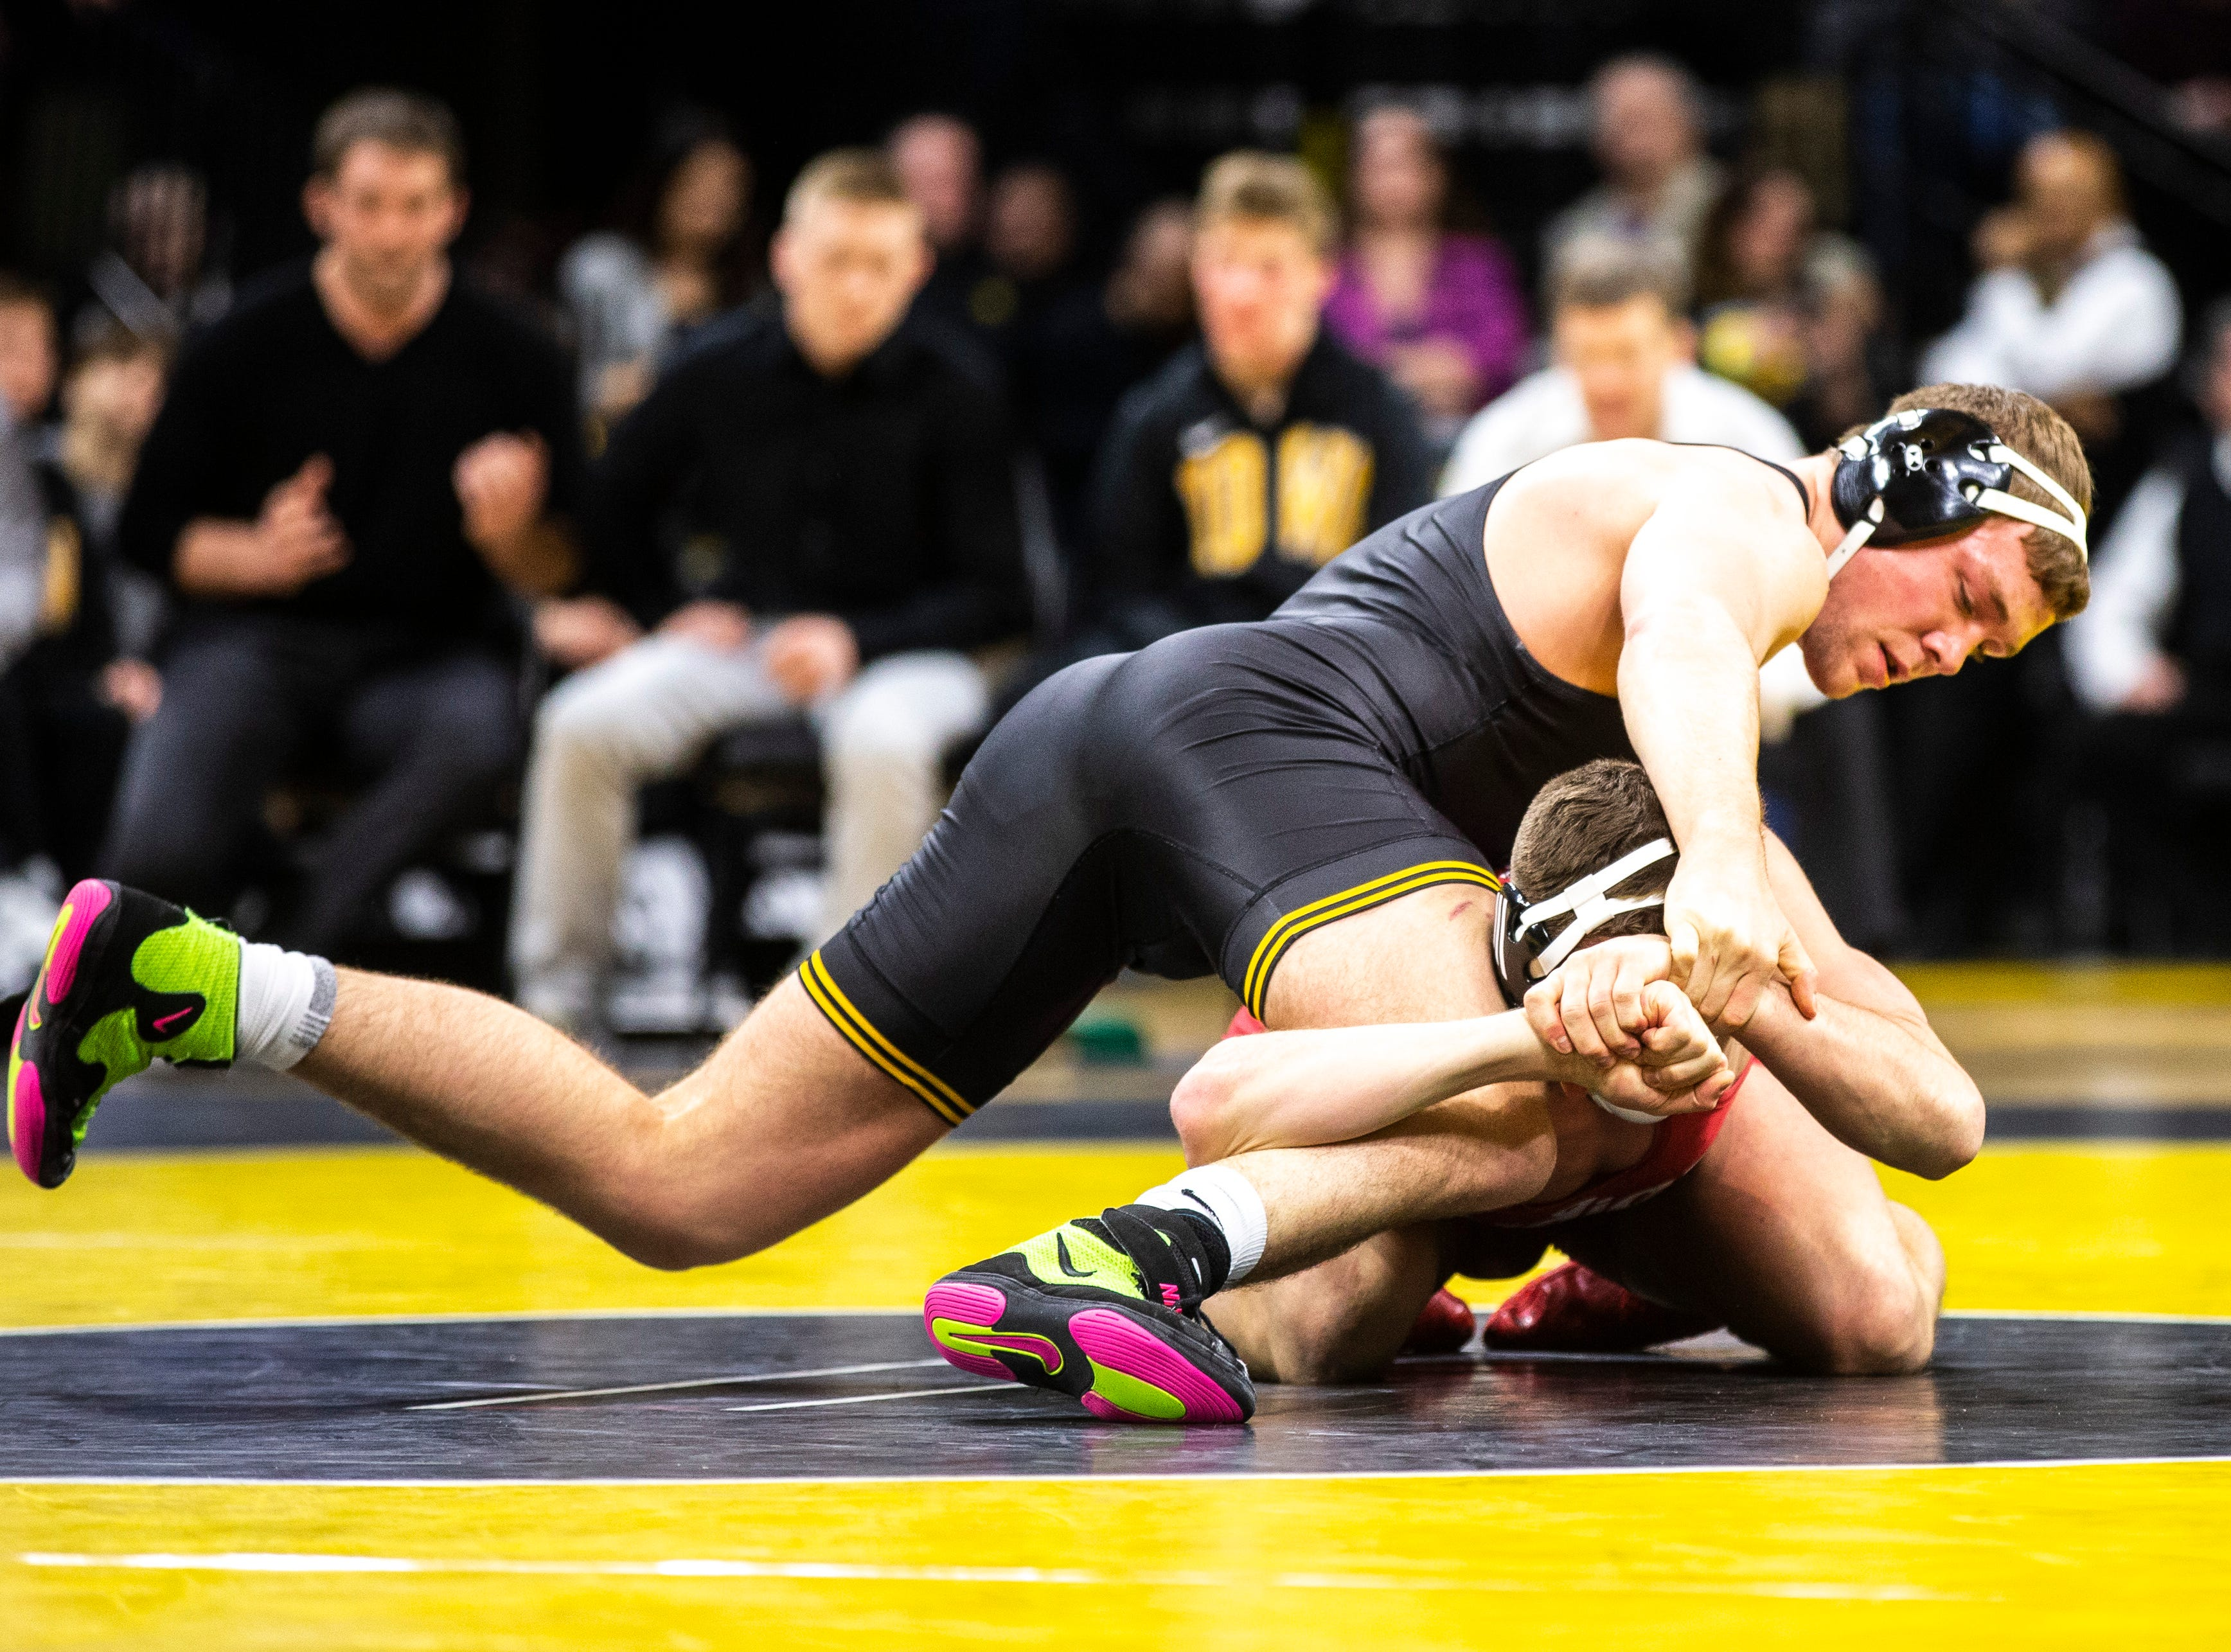 Iowa's Jacob Warner, left, wrestles Indiana's Jake Kleimola at 197 during a NCAA Big Ten Conference wrestling dual on Friday, Feb. 15, 2019 at Carver-Hawkeye Arena in Iowa City, Iowa.